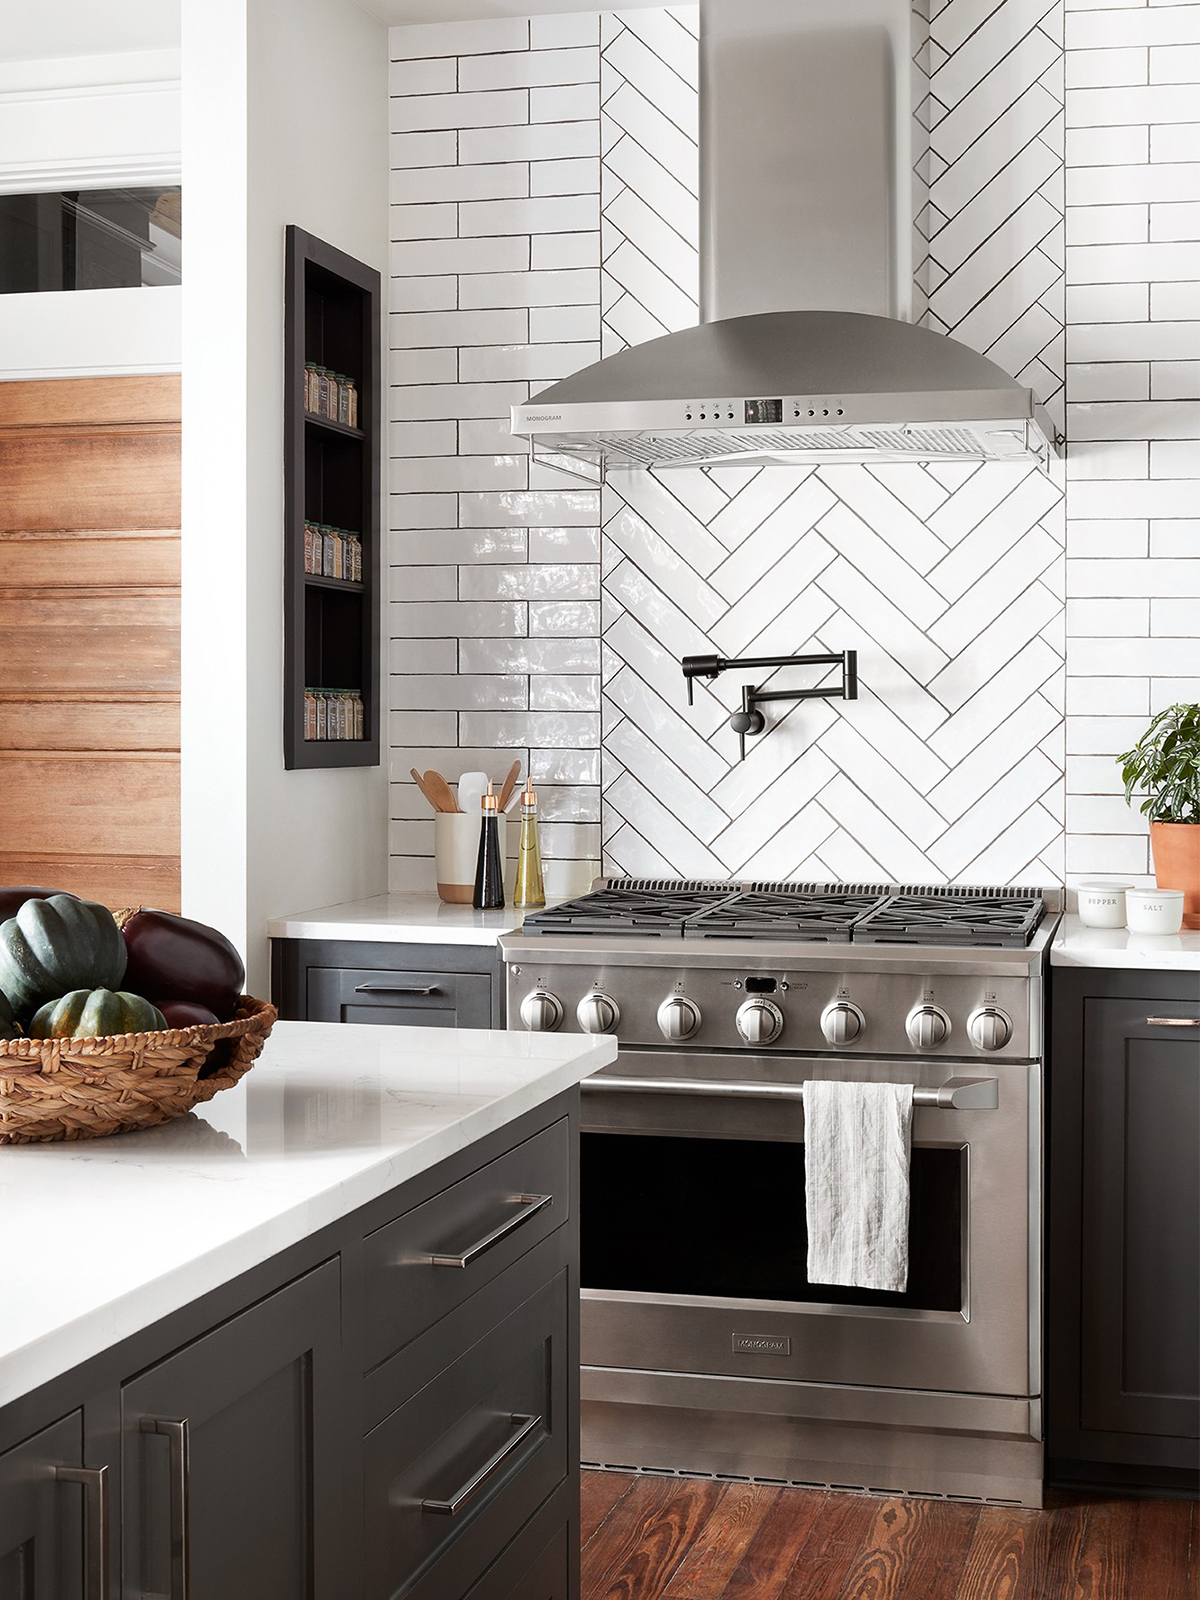 Best Fixer Upper Kitchen Designs From Joanna Gaines Apartment Therapy,Data Visualization Ui Design